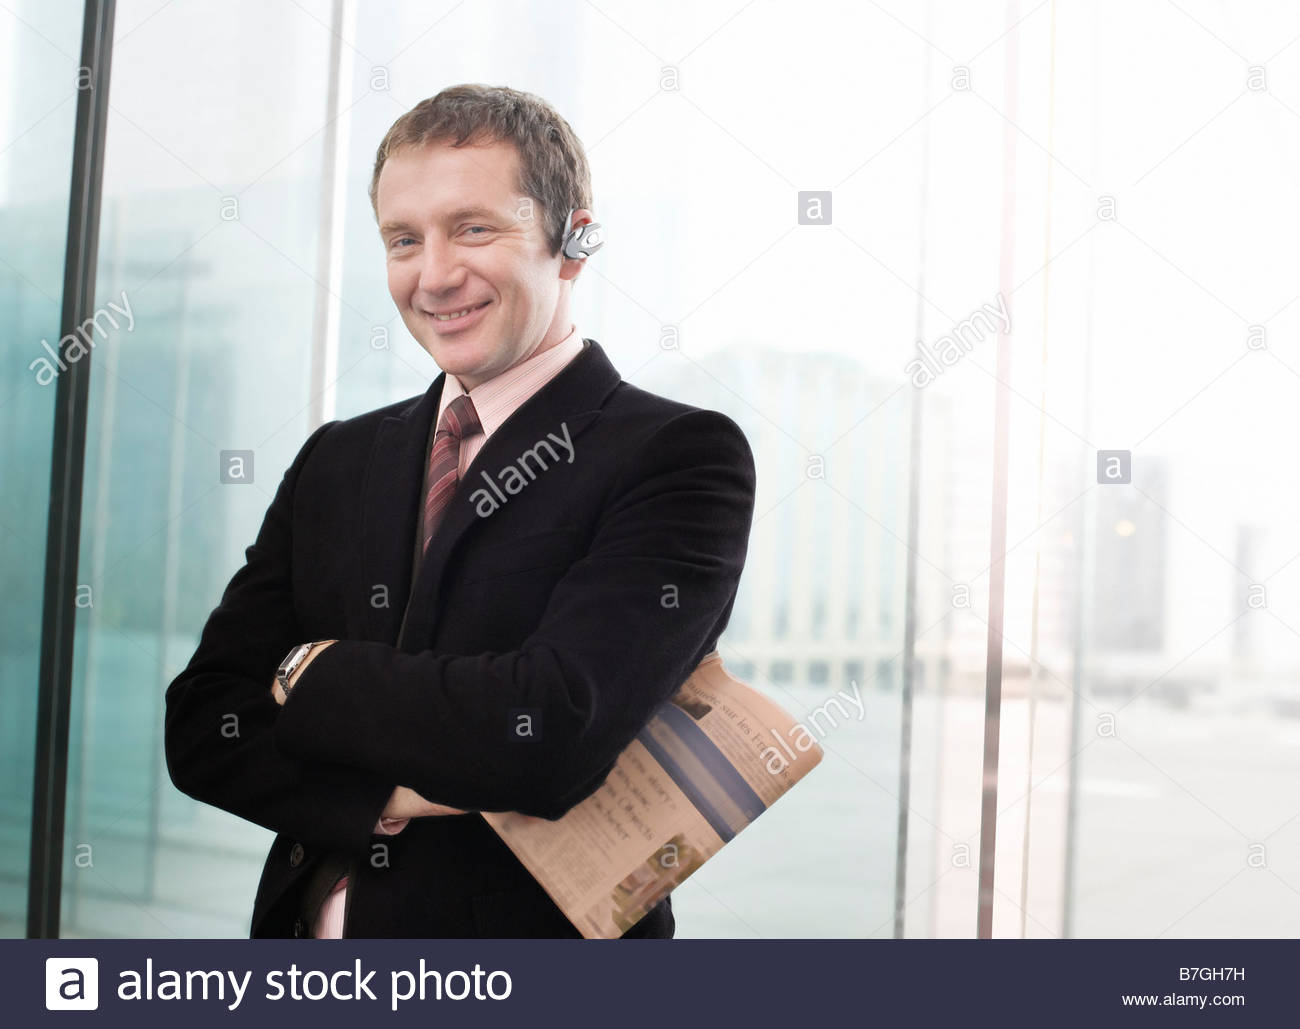 40-45 Years,40s,Adults Only,Business,Business Attire,Businessmen,Caucasian Ethnicity,City Life,Color - Stock Image